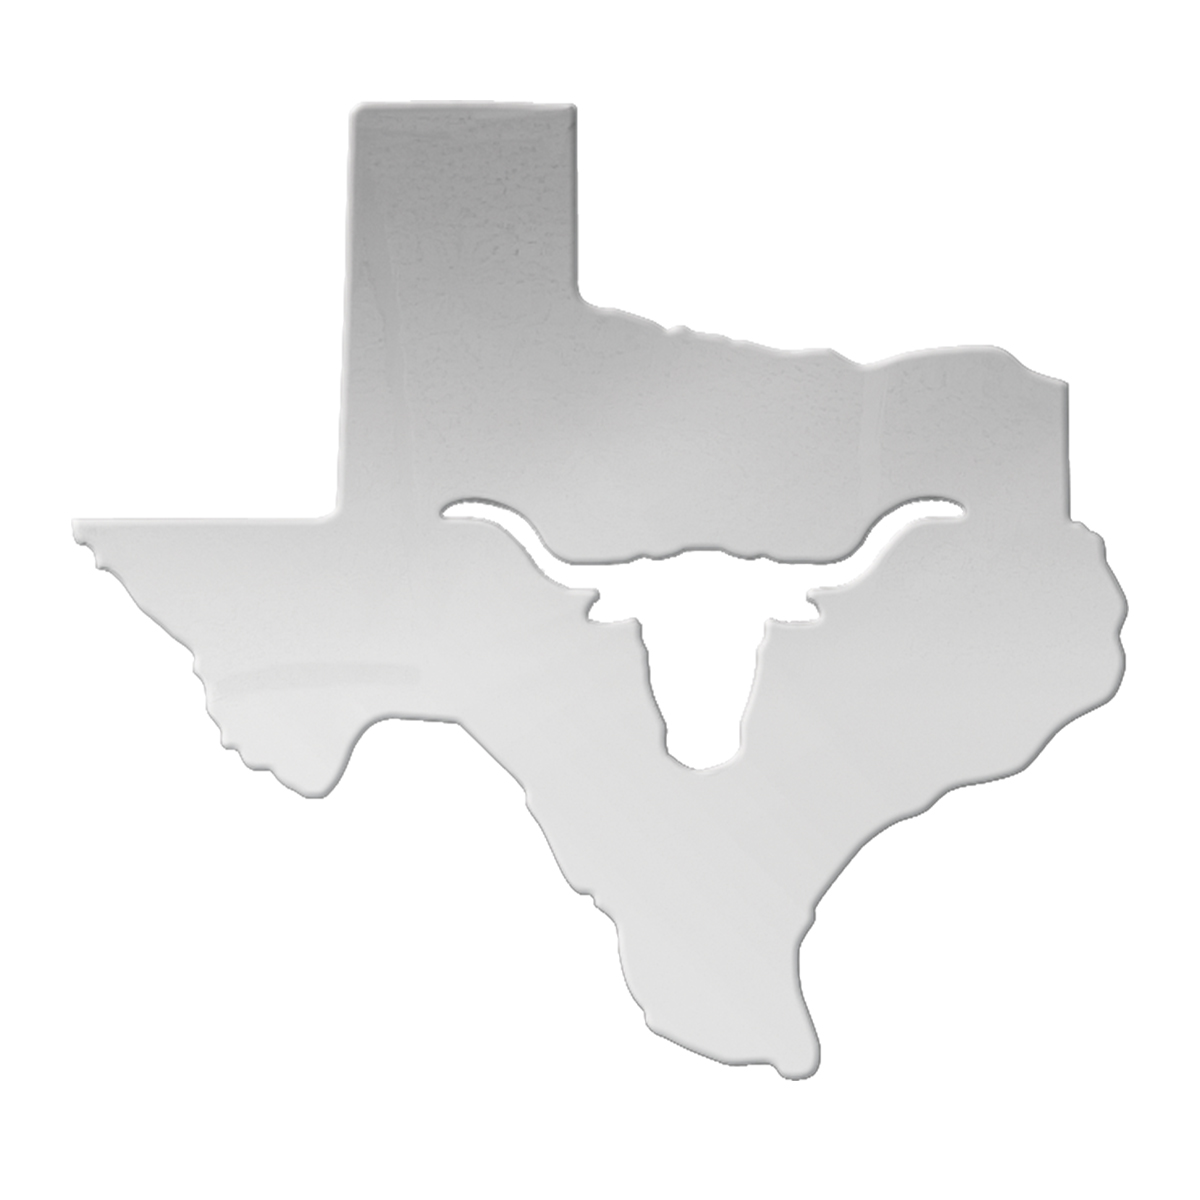 Texas State Cut Out with Longhorn